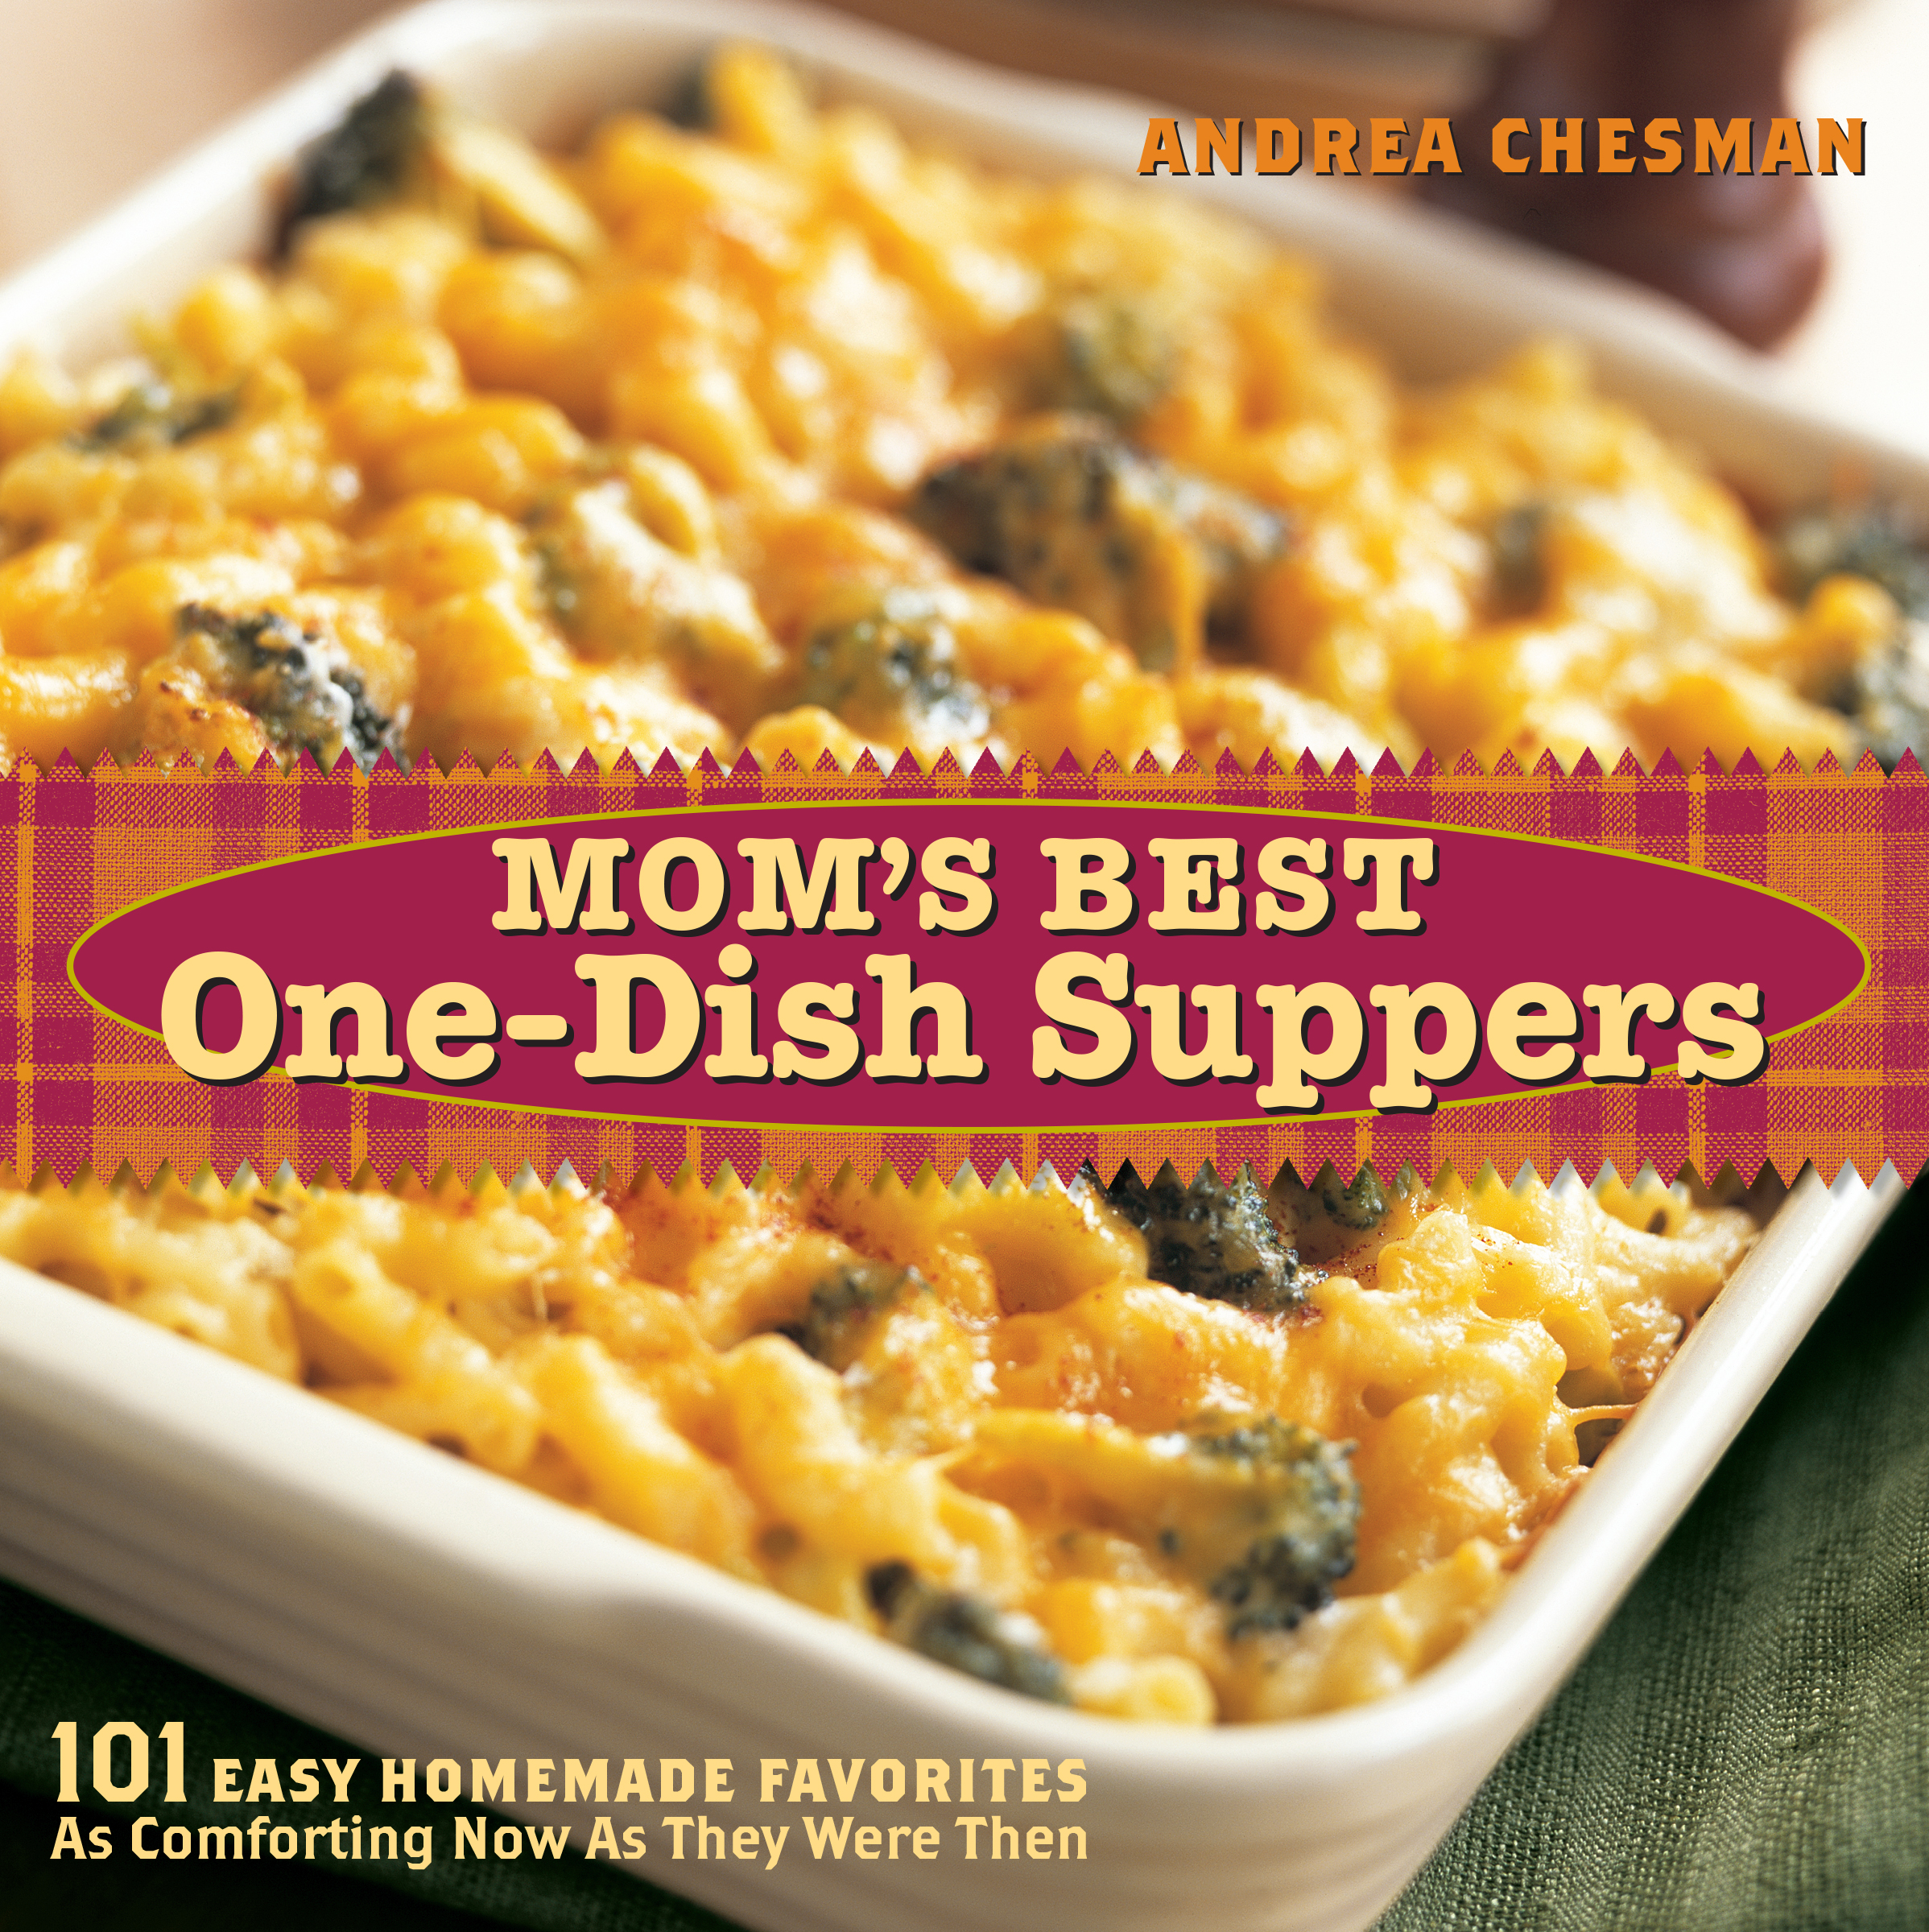 Mom's Best One-Dish Suppers 101 Easy Homemade Favorites, as Comforting Now as They Were Then - Andrea Chesman